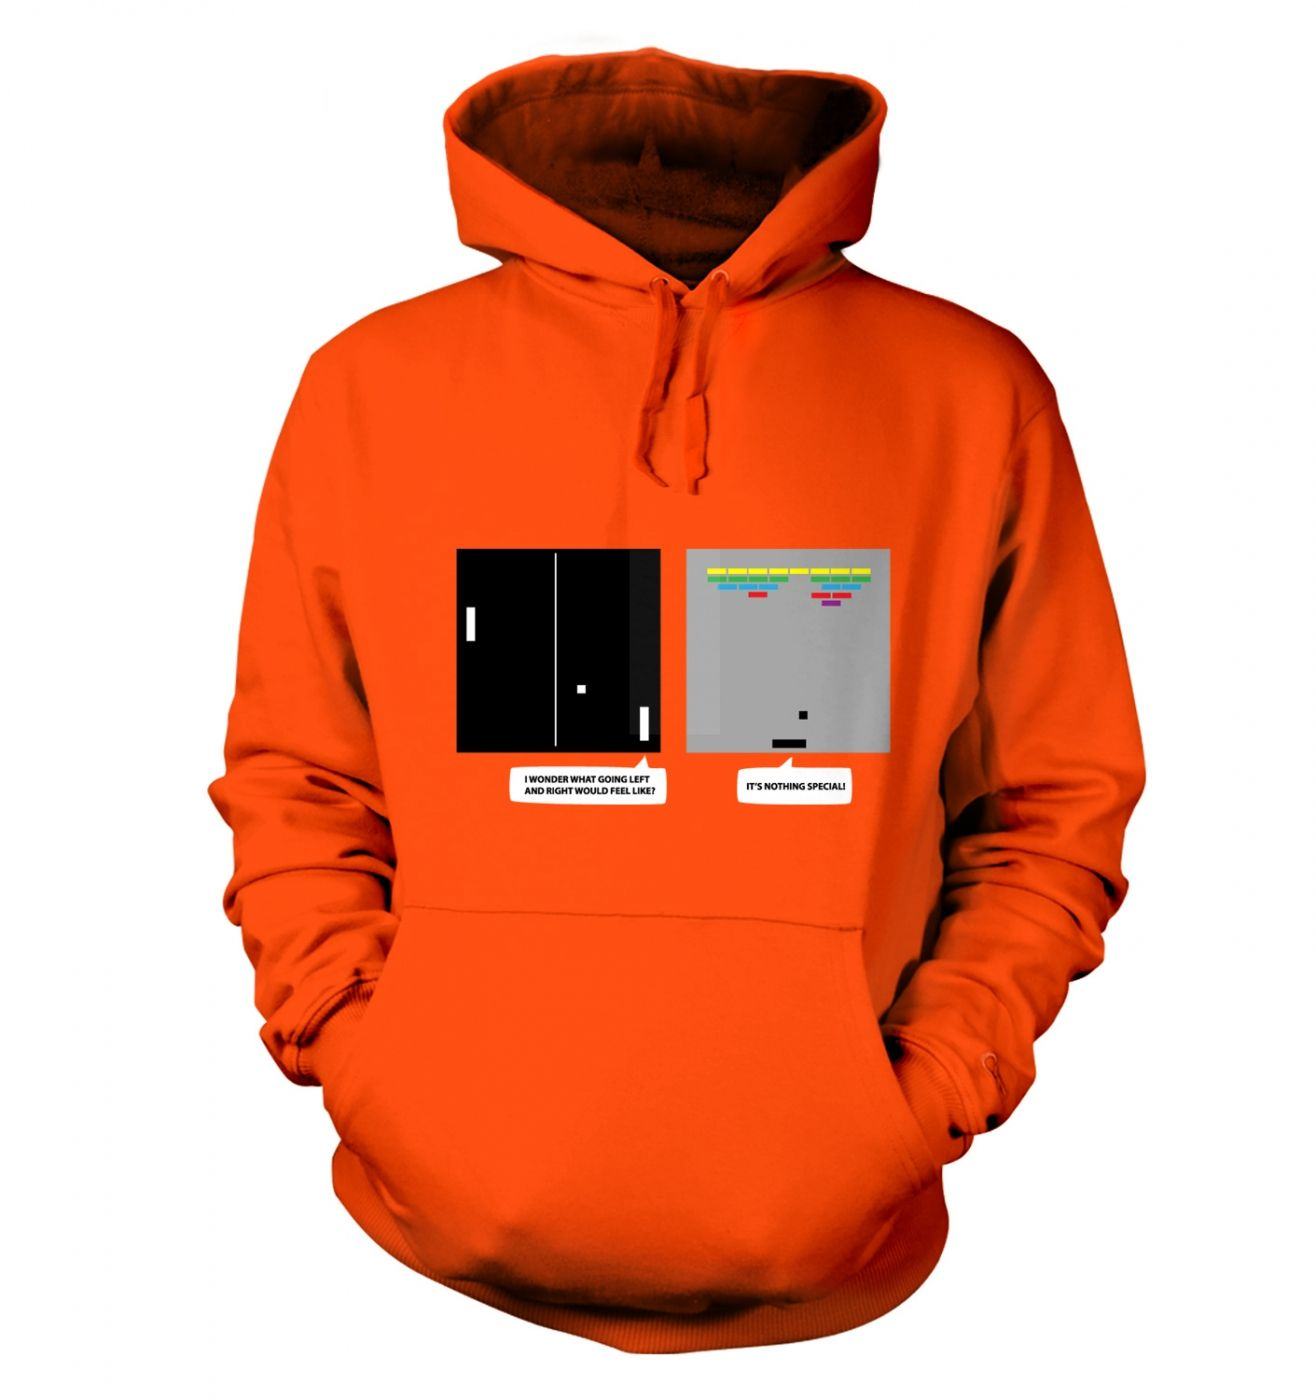 Wonder Of Dimenions retro gaming hoodie